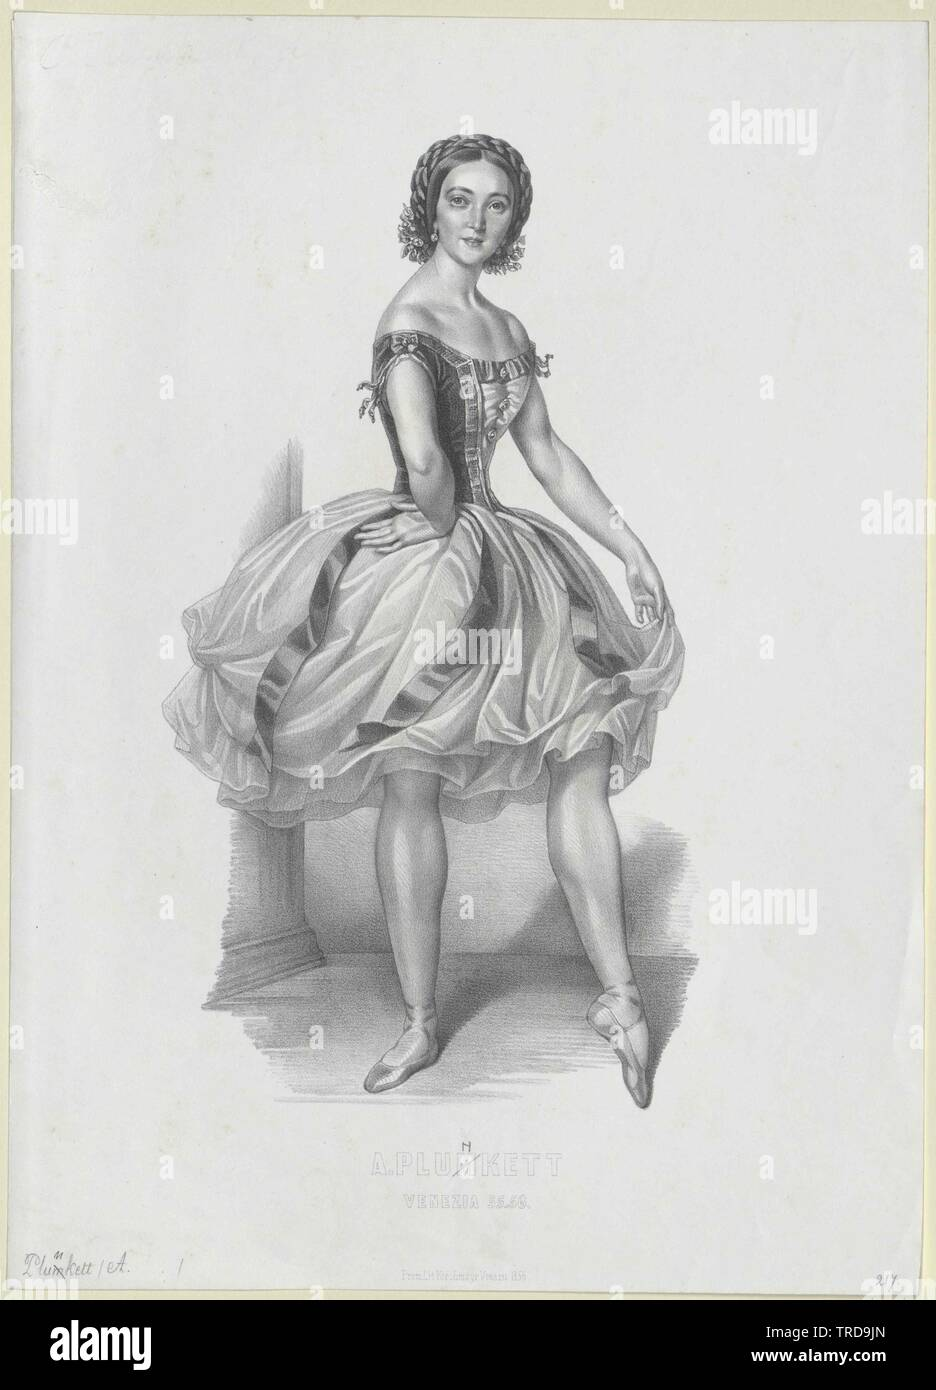 Marie Plunkett, Adeline, vivió circa 1844, Additional-Rights-Clearance-Info-Not-Available Foto de stock